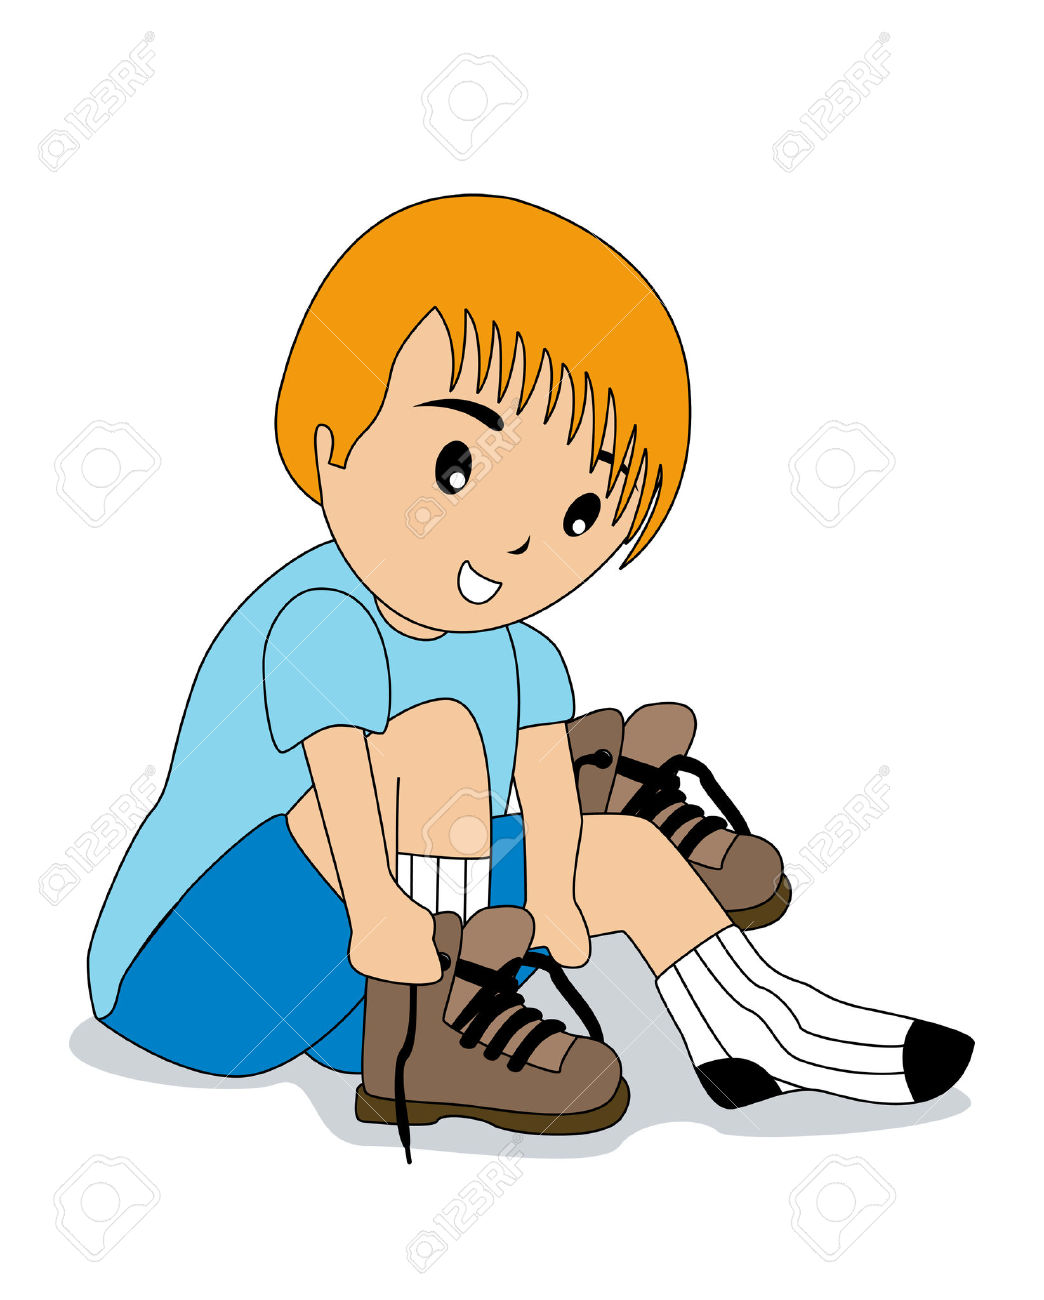 Boy socks and shoes clipart.